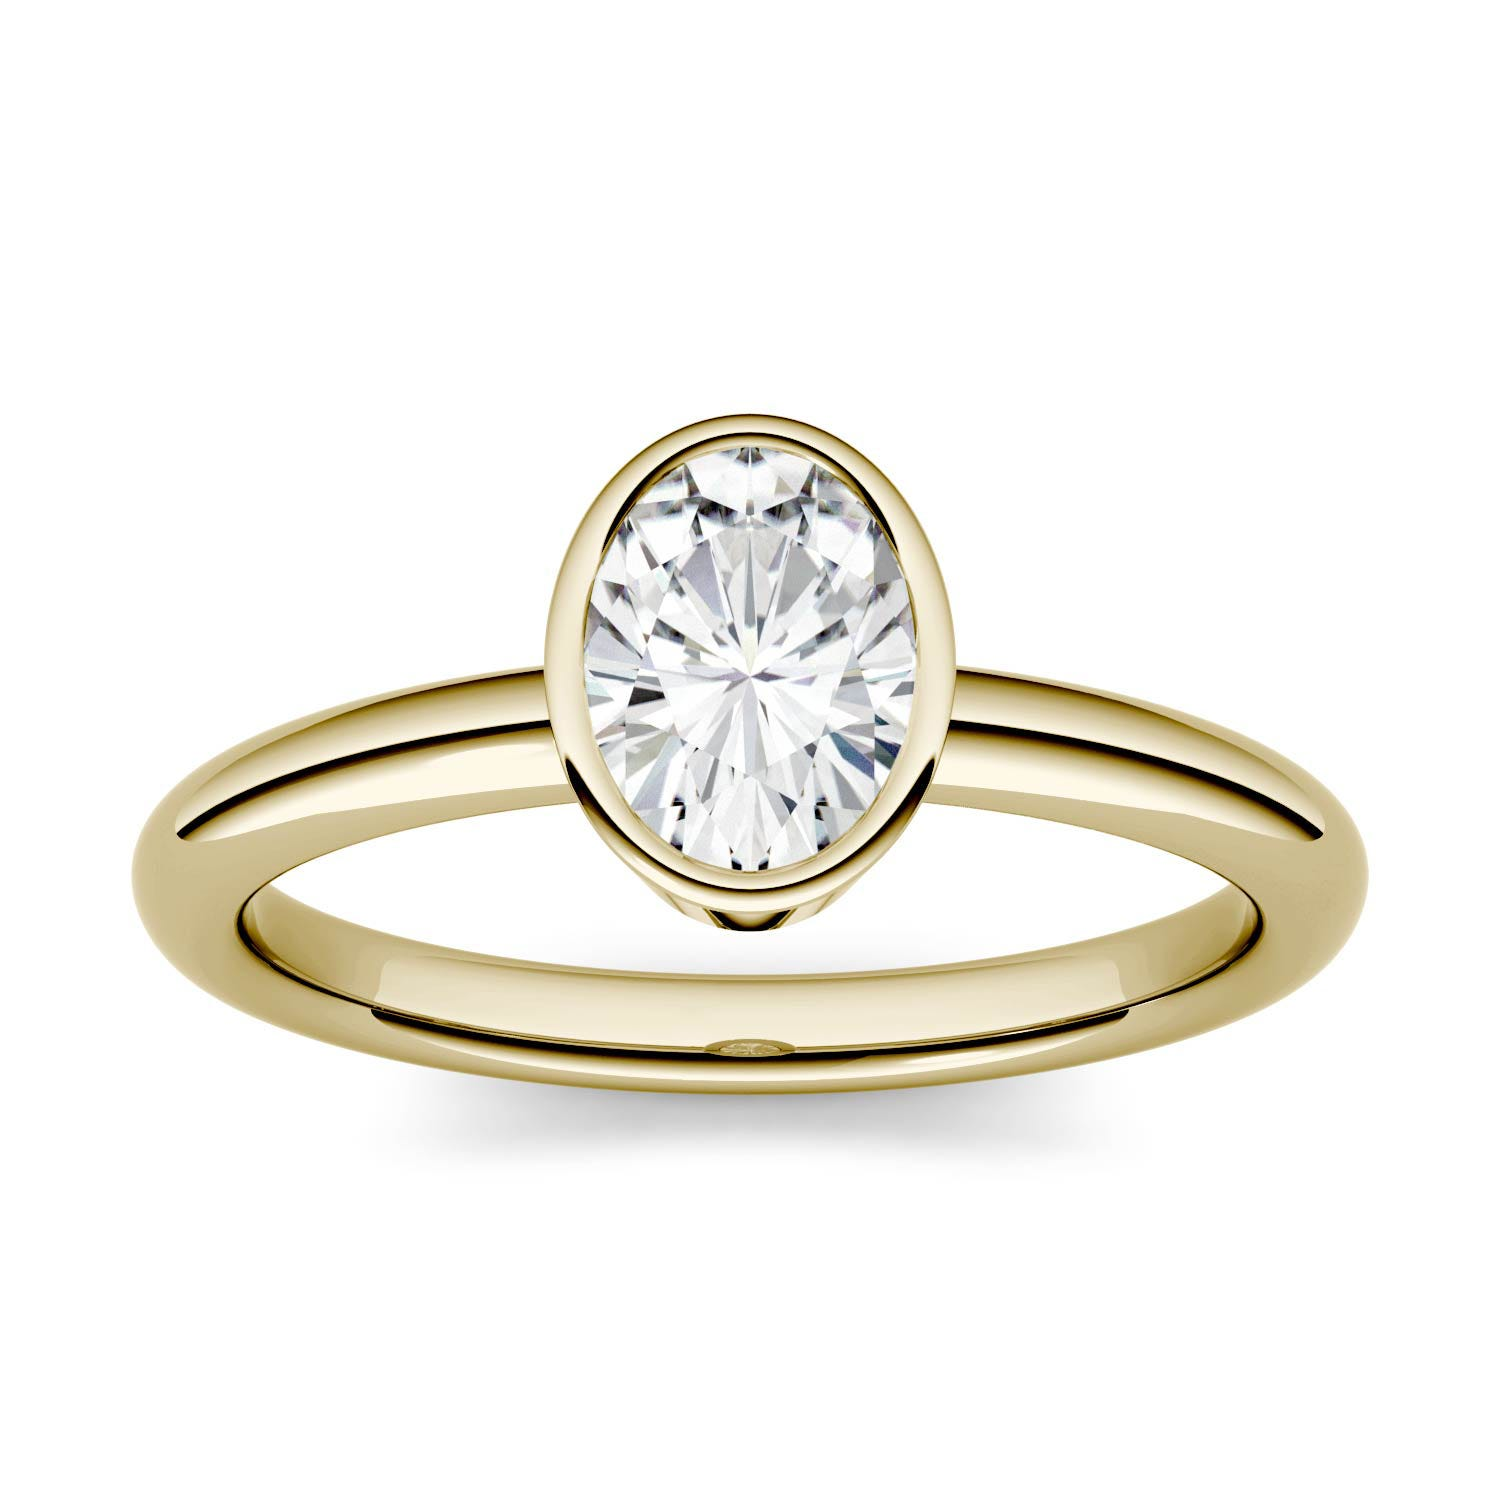 Oval 0.84cttw DEW Moissanite Bezel Set Solitaire Engagement Ring in 14K Yellow Gold 500119